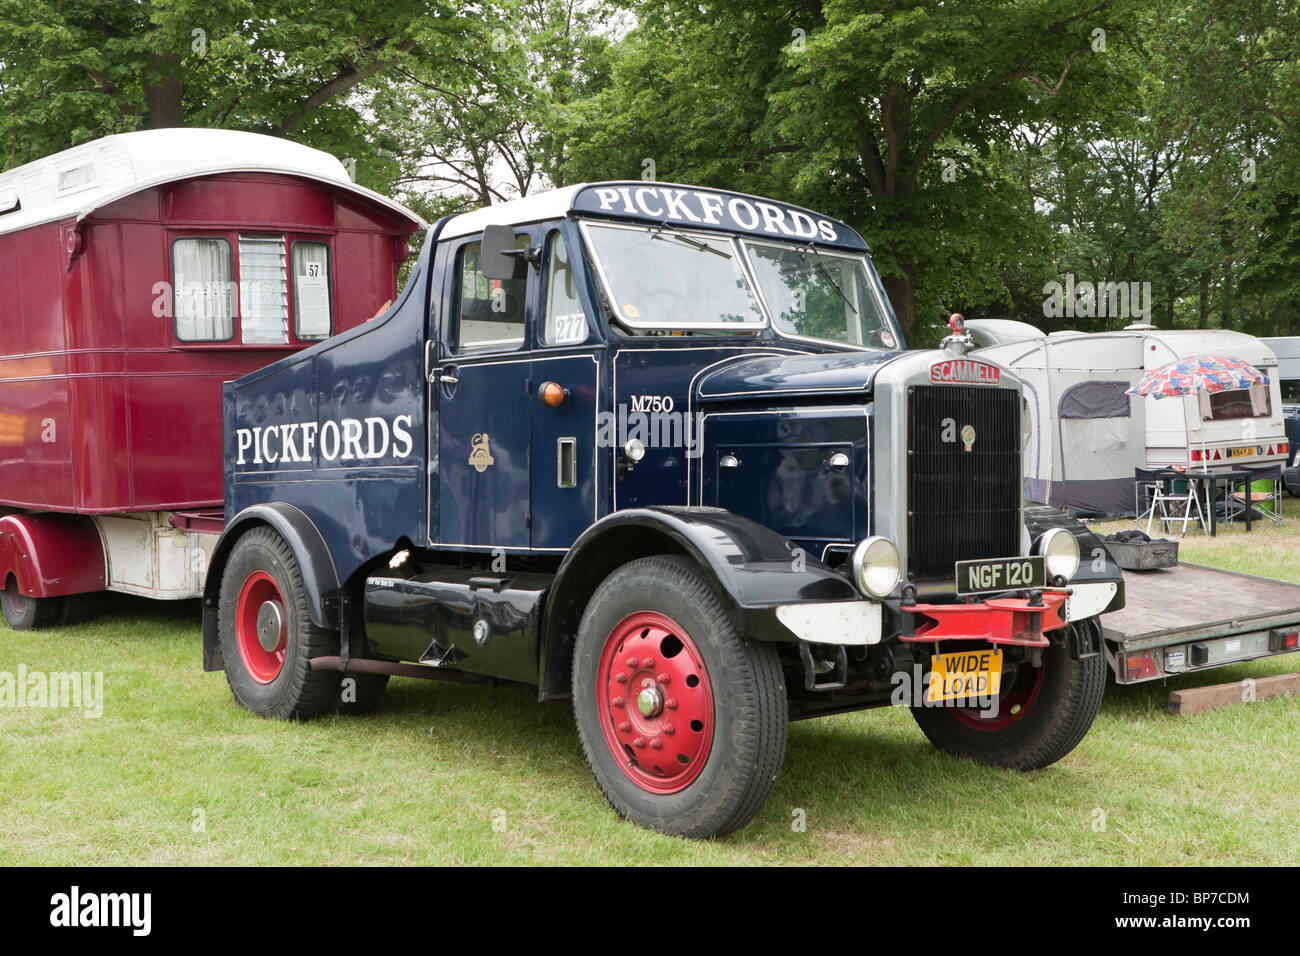 1952 Scammell type 20 ballast box tractor with Pickfords naming Stock Photo